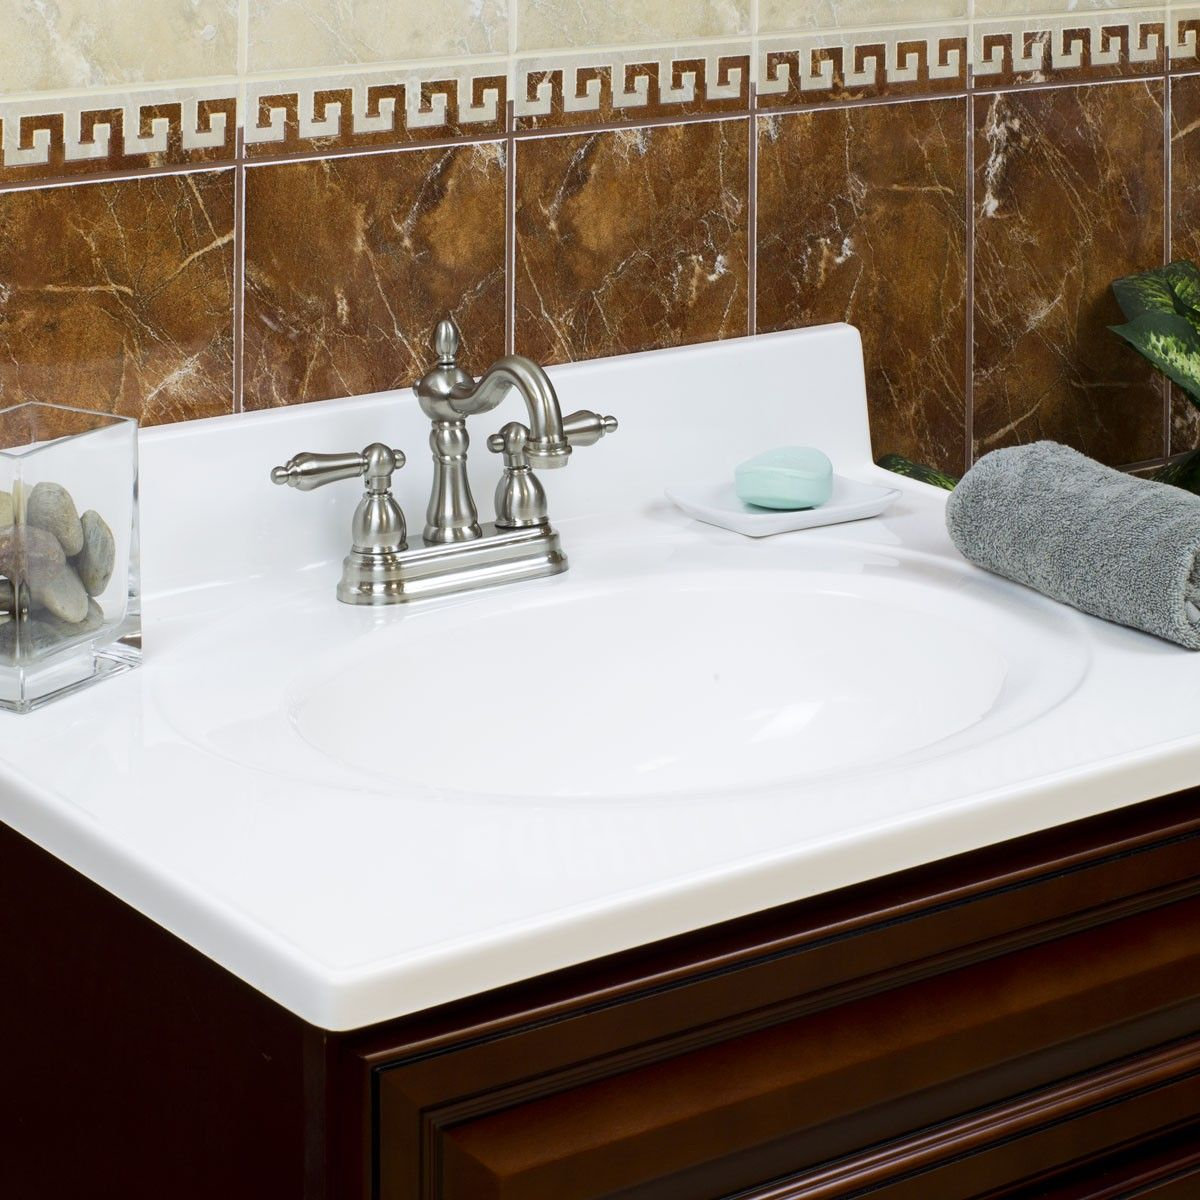 25 X 19 Lesscare White Cultured Marble Vanity Top With Flush Oval Bowl Cultured Marble Countertops Cultured Marble Cultured Marble Vanity Tops